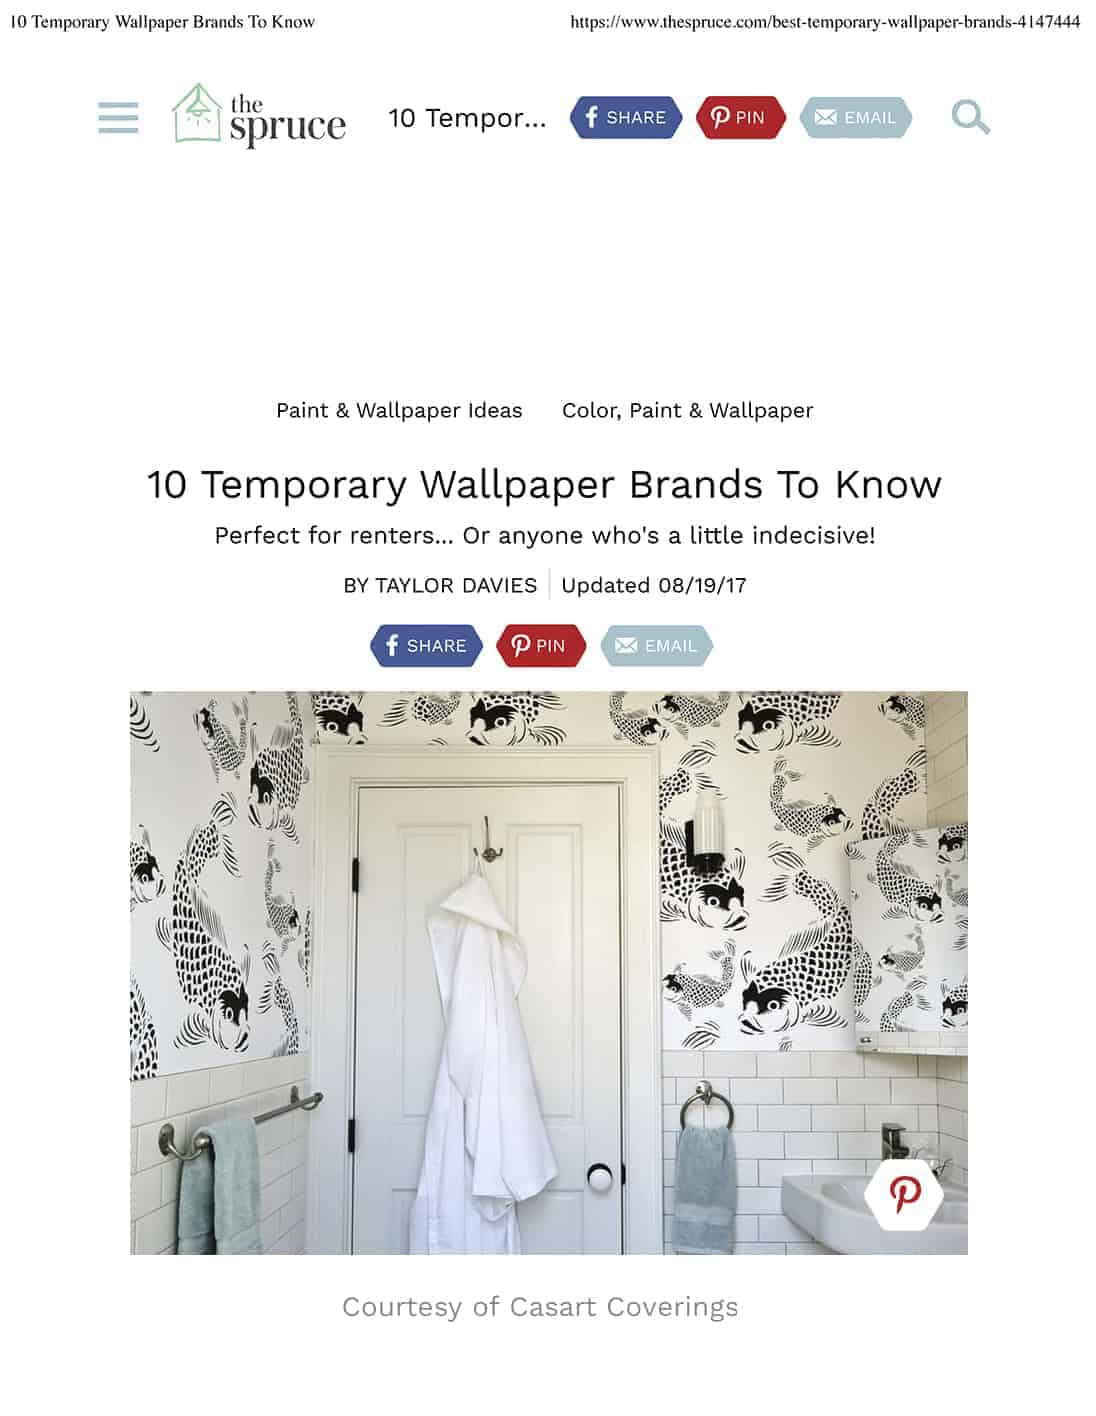 Casart Coverings via The Spruce 10 top temporary wallpaper brands to know_press